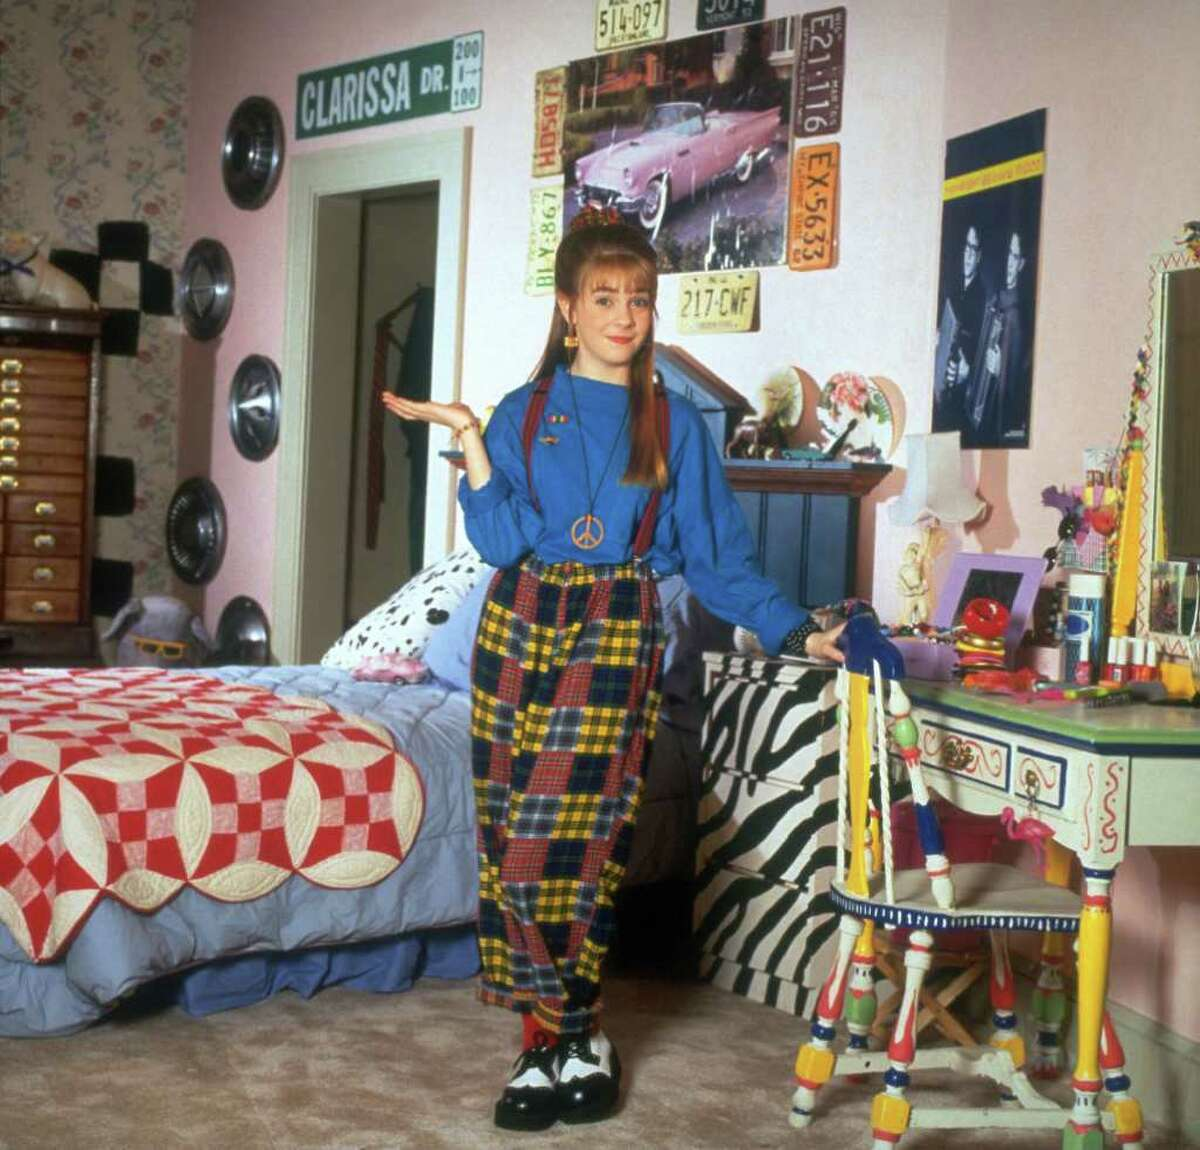 Nickelodeon MODERN CLASSIC: Melissa Joan Hart starred as Clarissa Darling in Clarissa Explains It All, part of TeenNick's The '90s Are All That programming block.